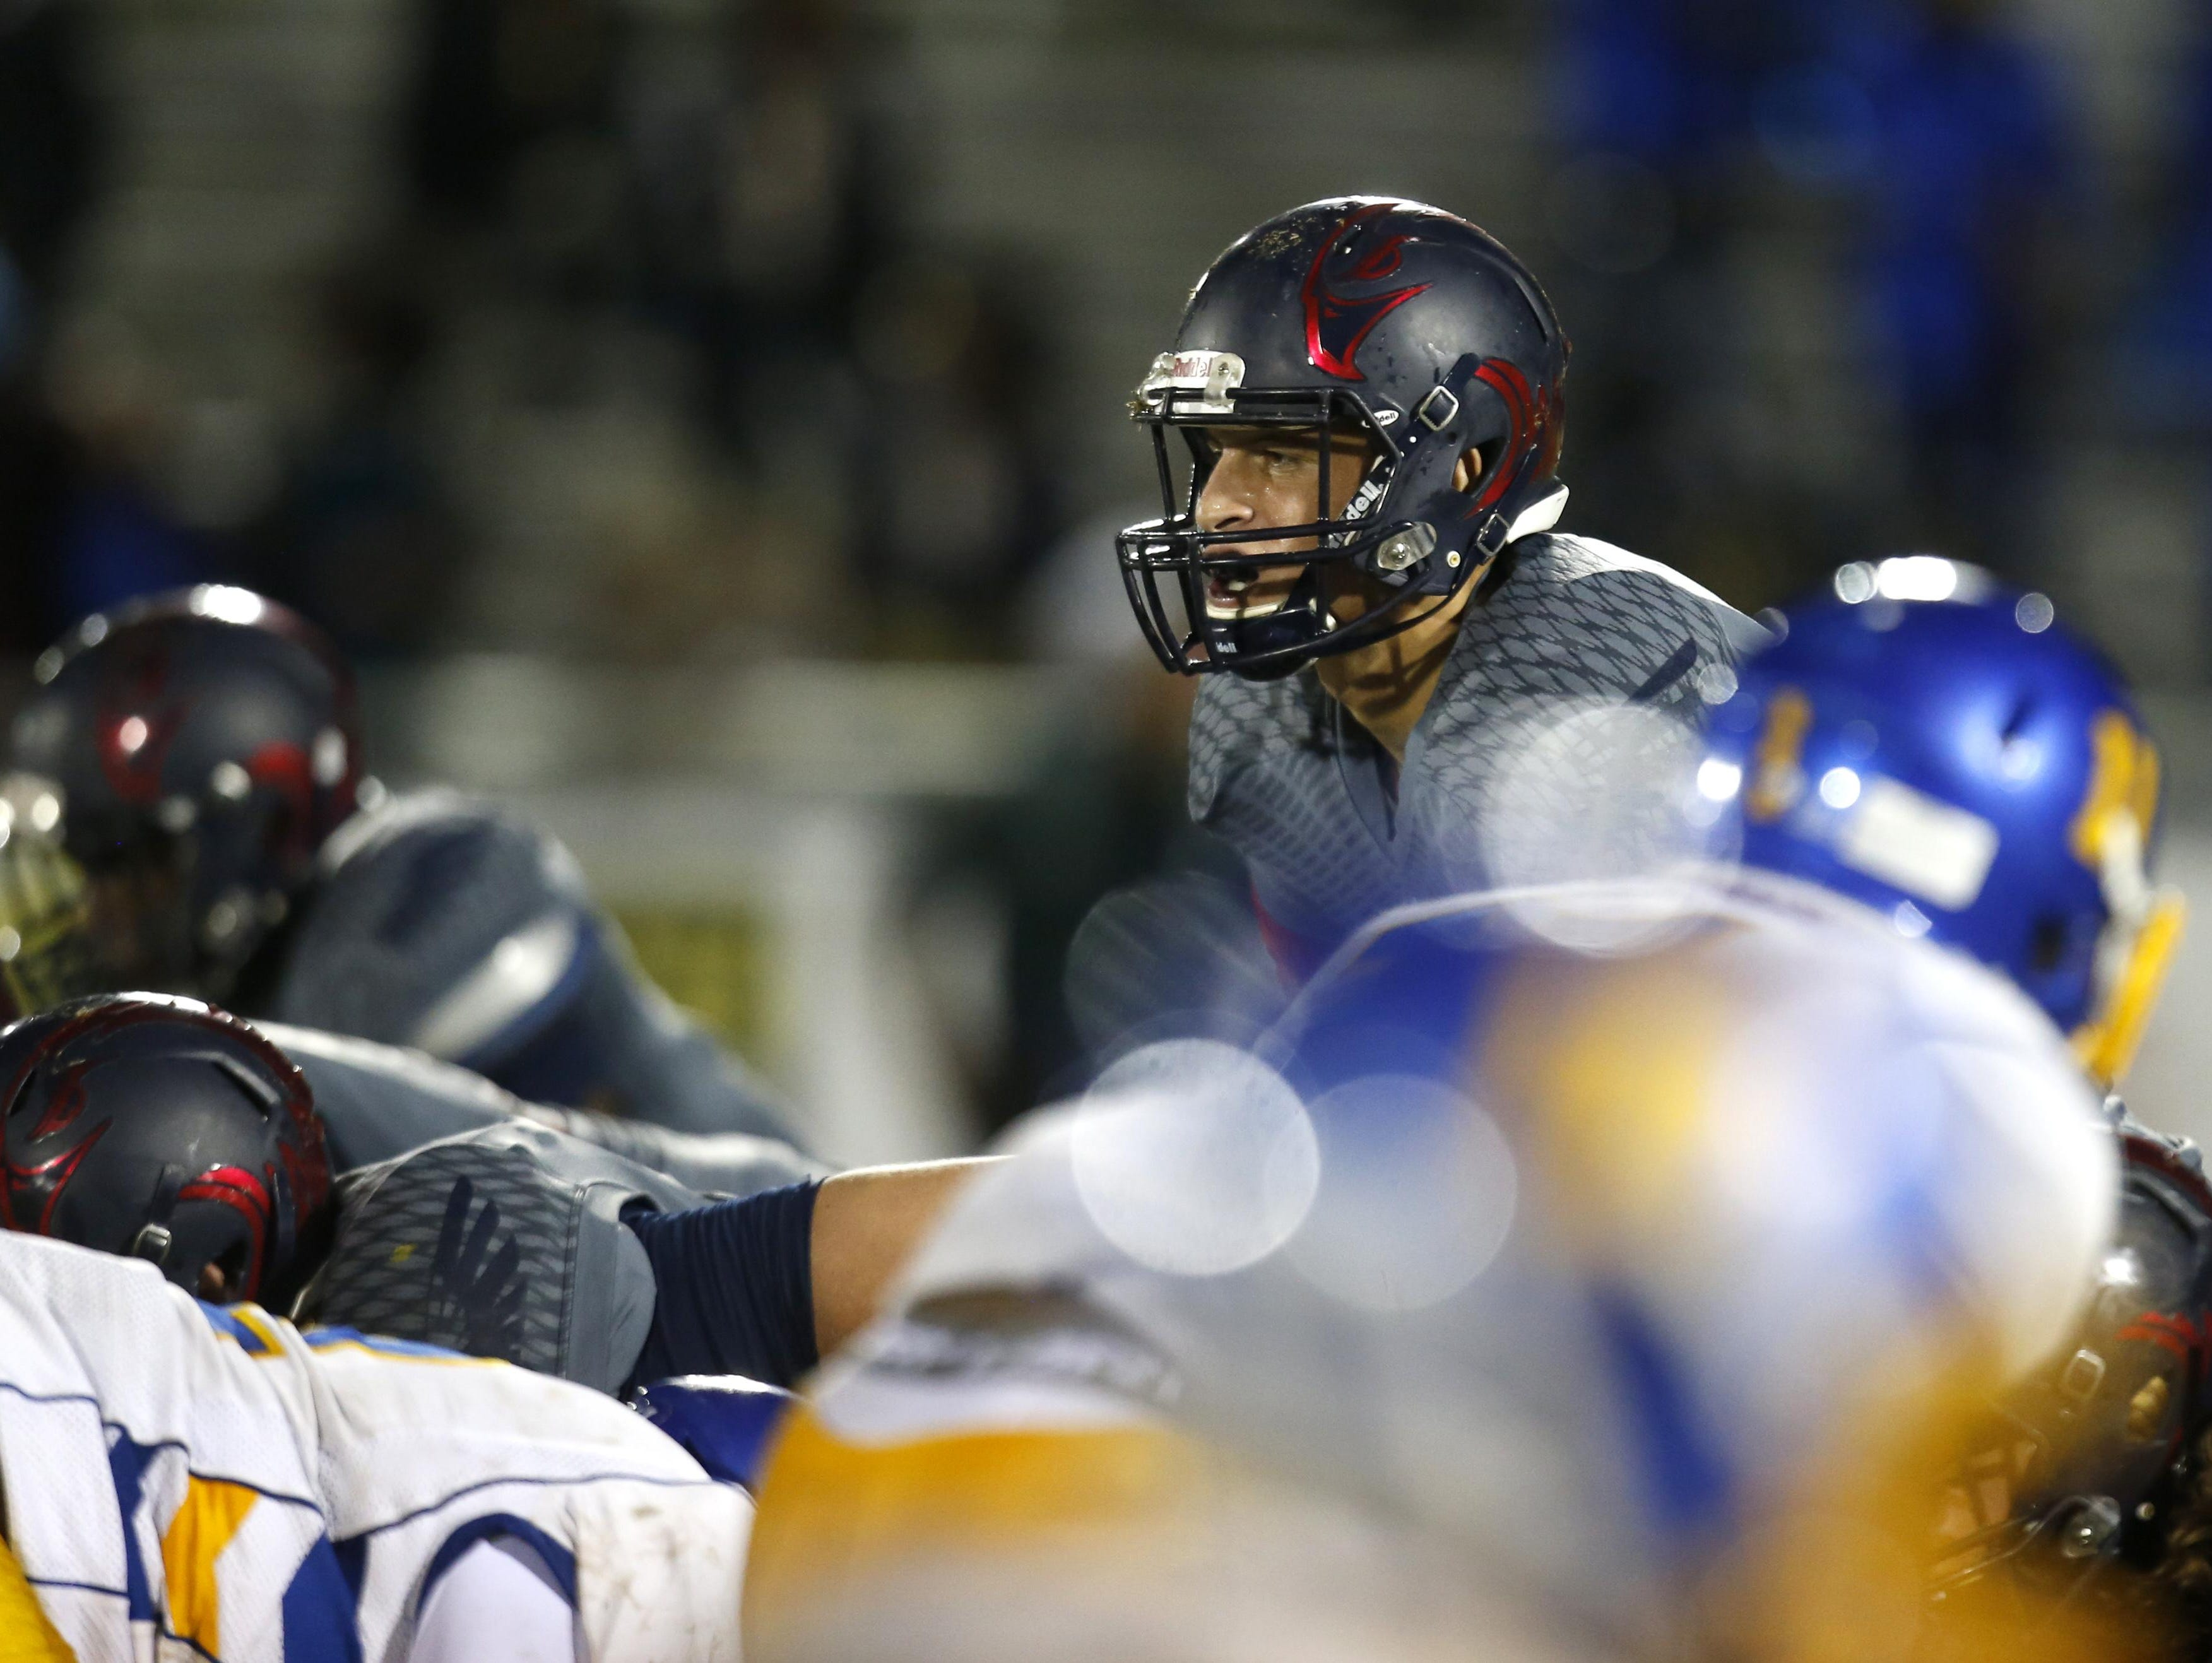 Wakulla quarterback Feleipe Franks goes under center for a play during a game against Rickards last Friday. On Monday, Franks opened up his recruitment by decommitting from LSU.